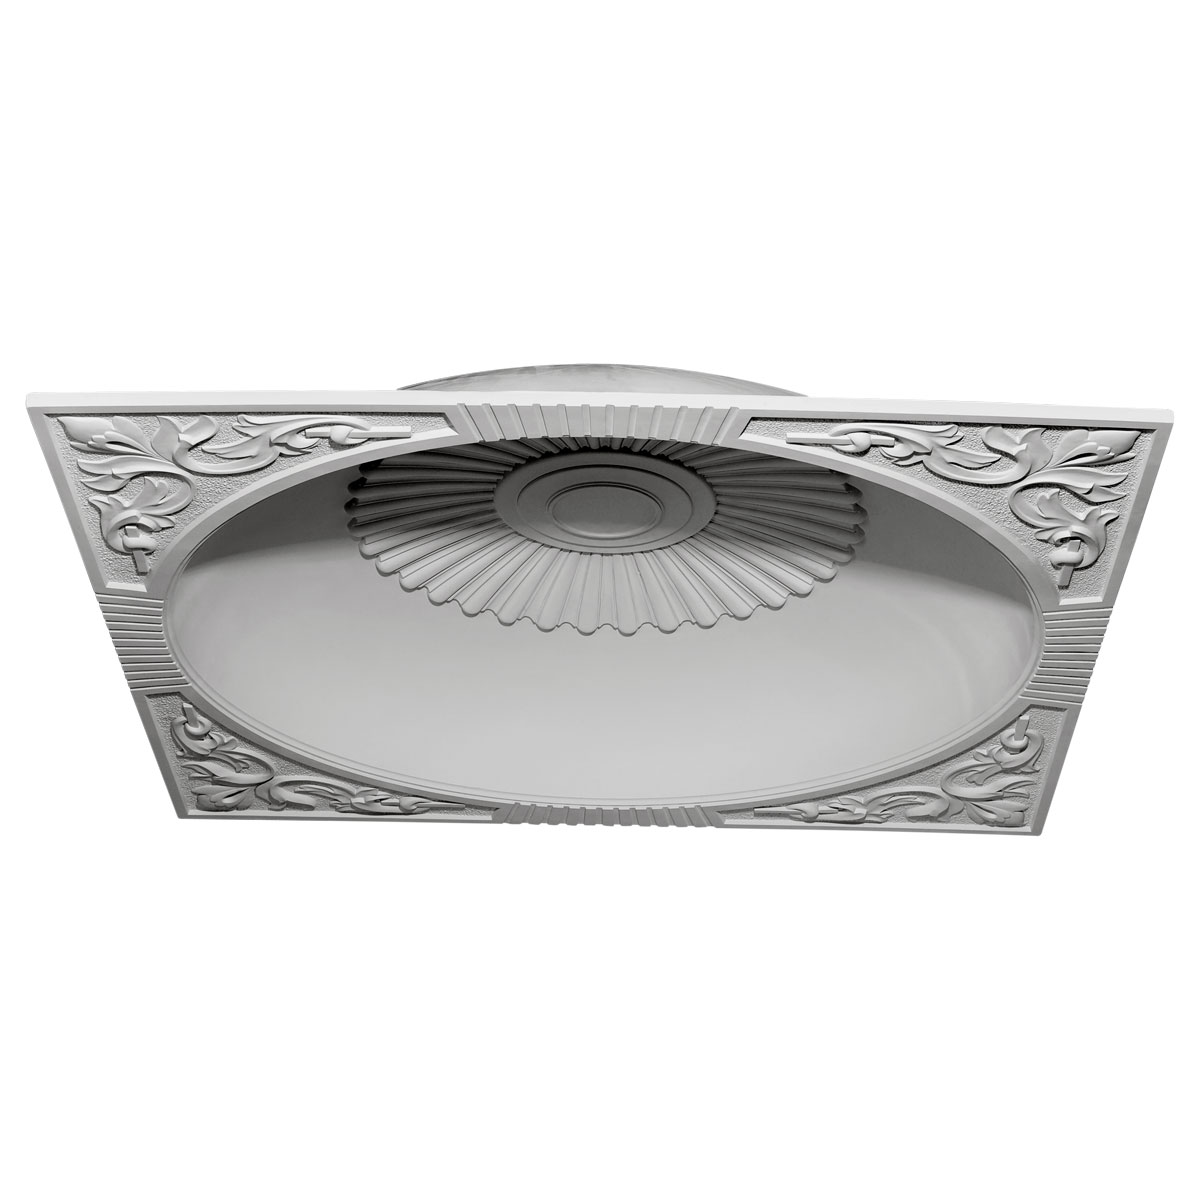 """DOME59SU 59""""OD x 51-1/8""""ID x 9""""D Sussex Recessed Mount Ceiling Dome (55"""" Diameter x 9-3/4""""D Rough Opening)"""